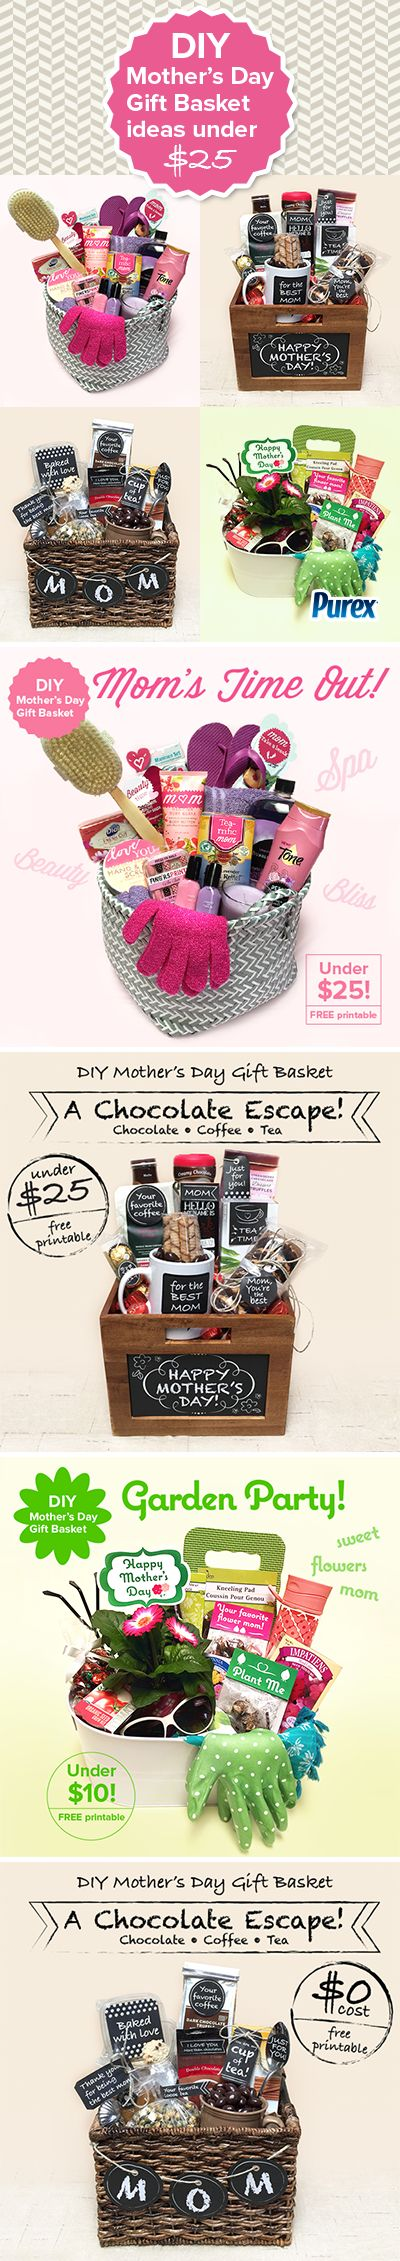 DIY Mother's Day gift basket ideas under $25!